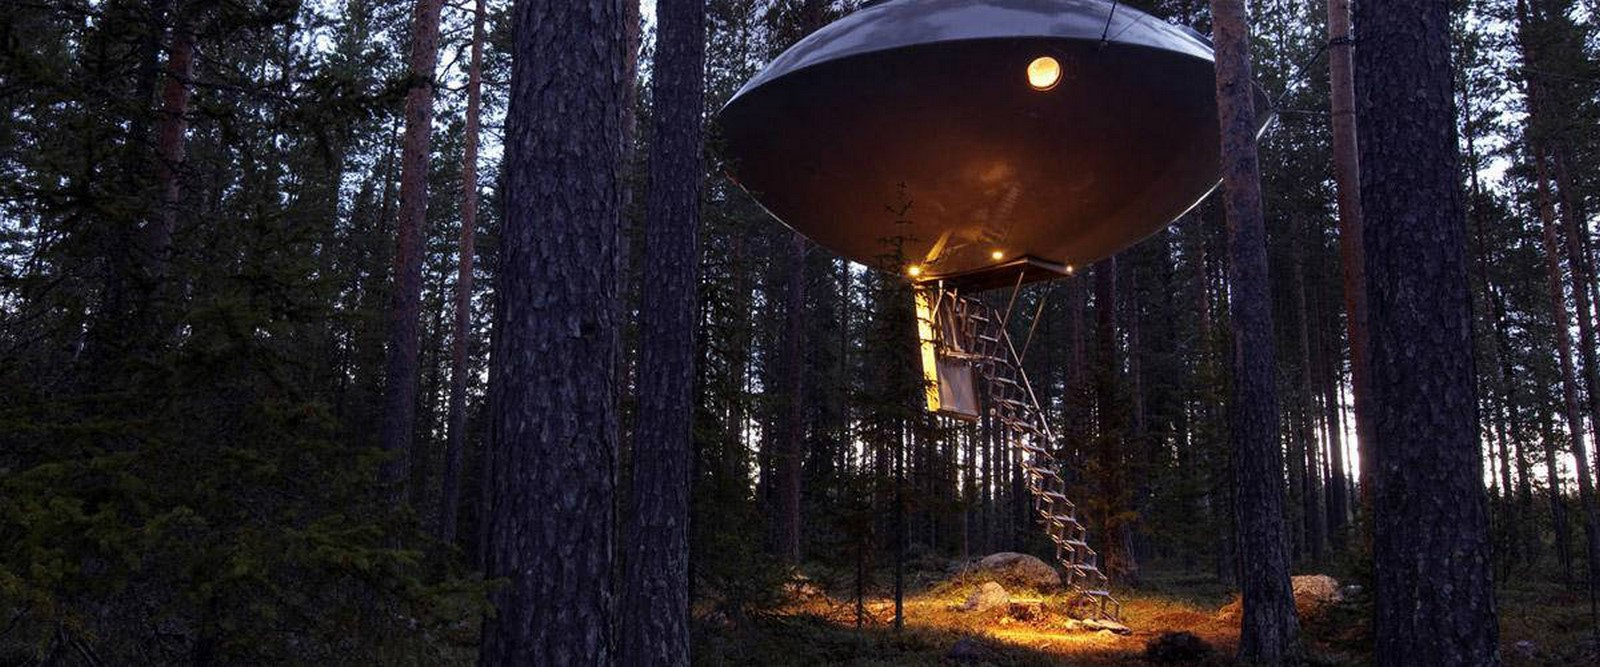 THE TREEHOTEL - Sheet3